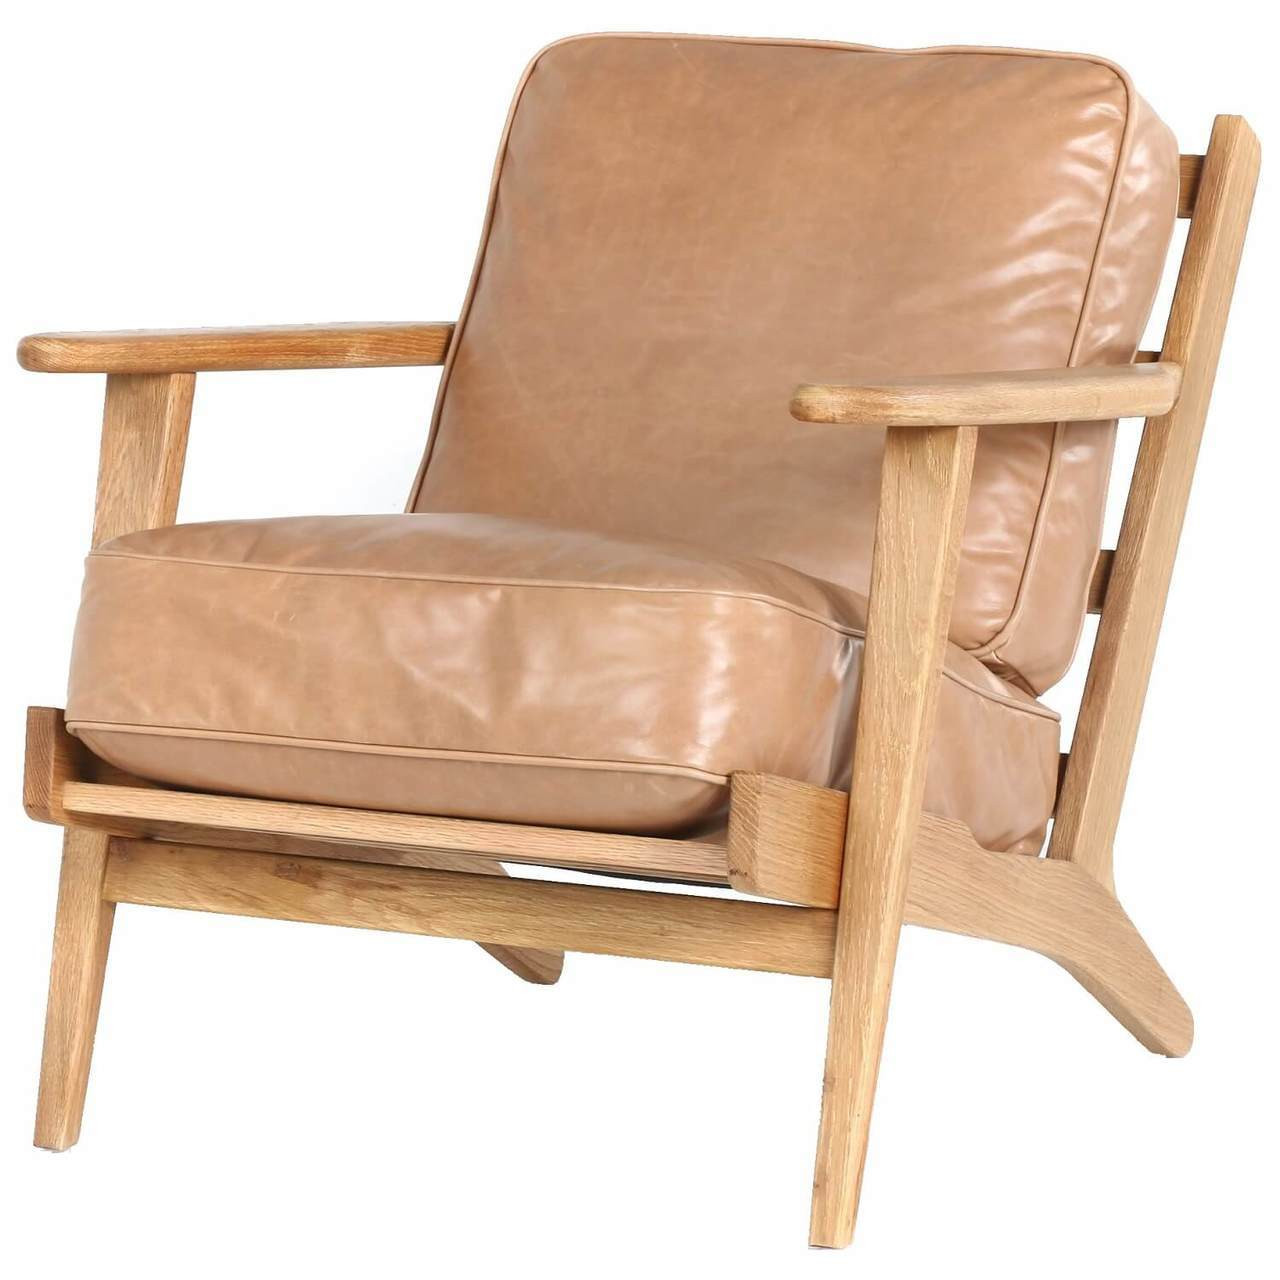 Groovy Mid Century Modern Brooks Tan Leather Lounge Armchair Pdpeps Interior Chair Design Pdpepsorg